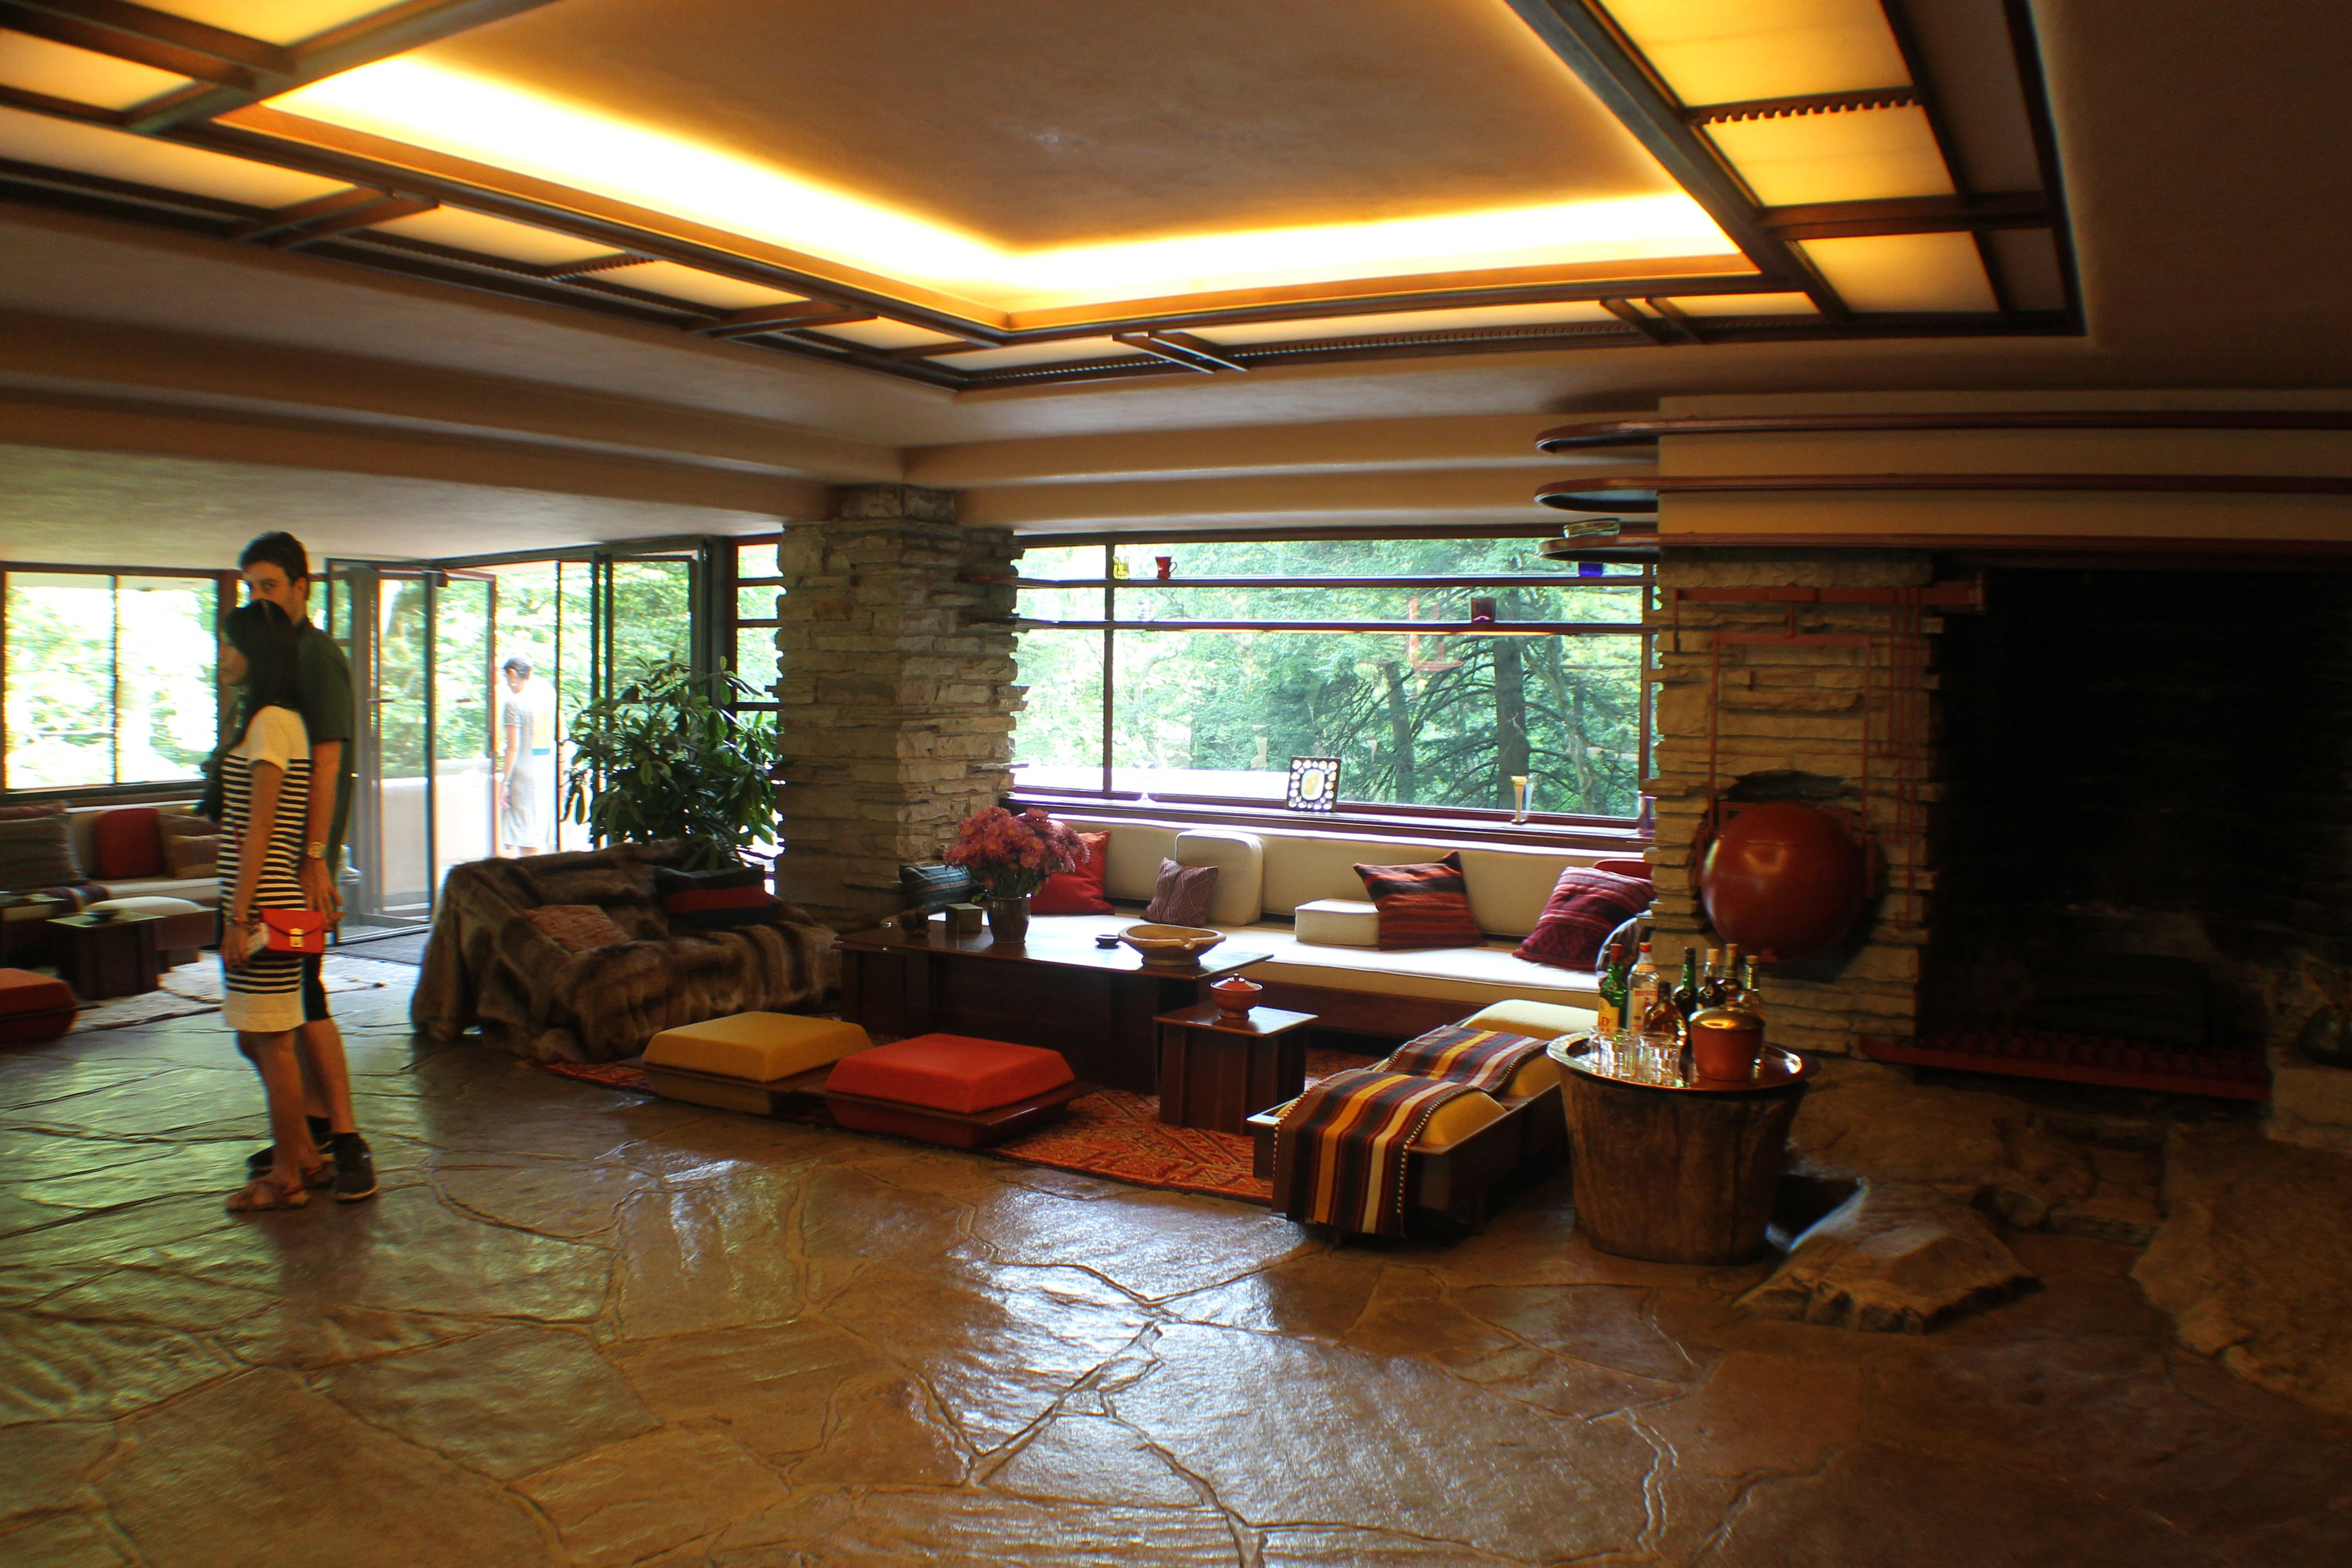 Interior decoration viewing gallery for frank lloyd wright falling water house interior glubdubs